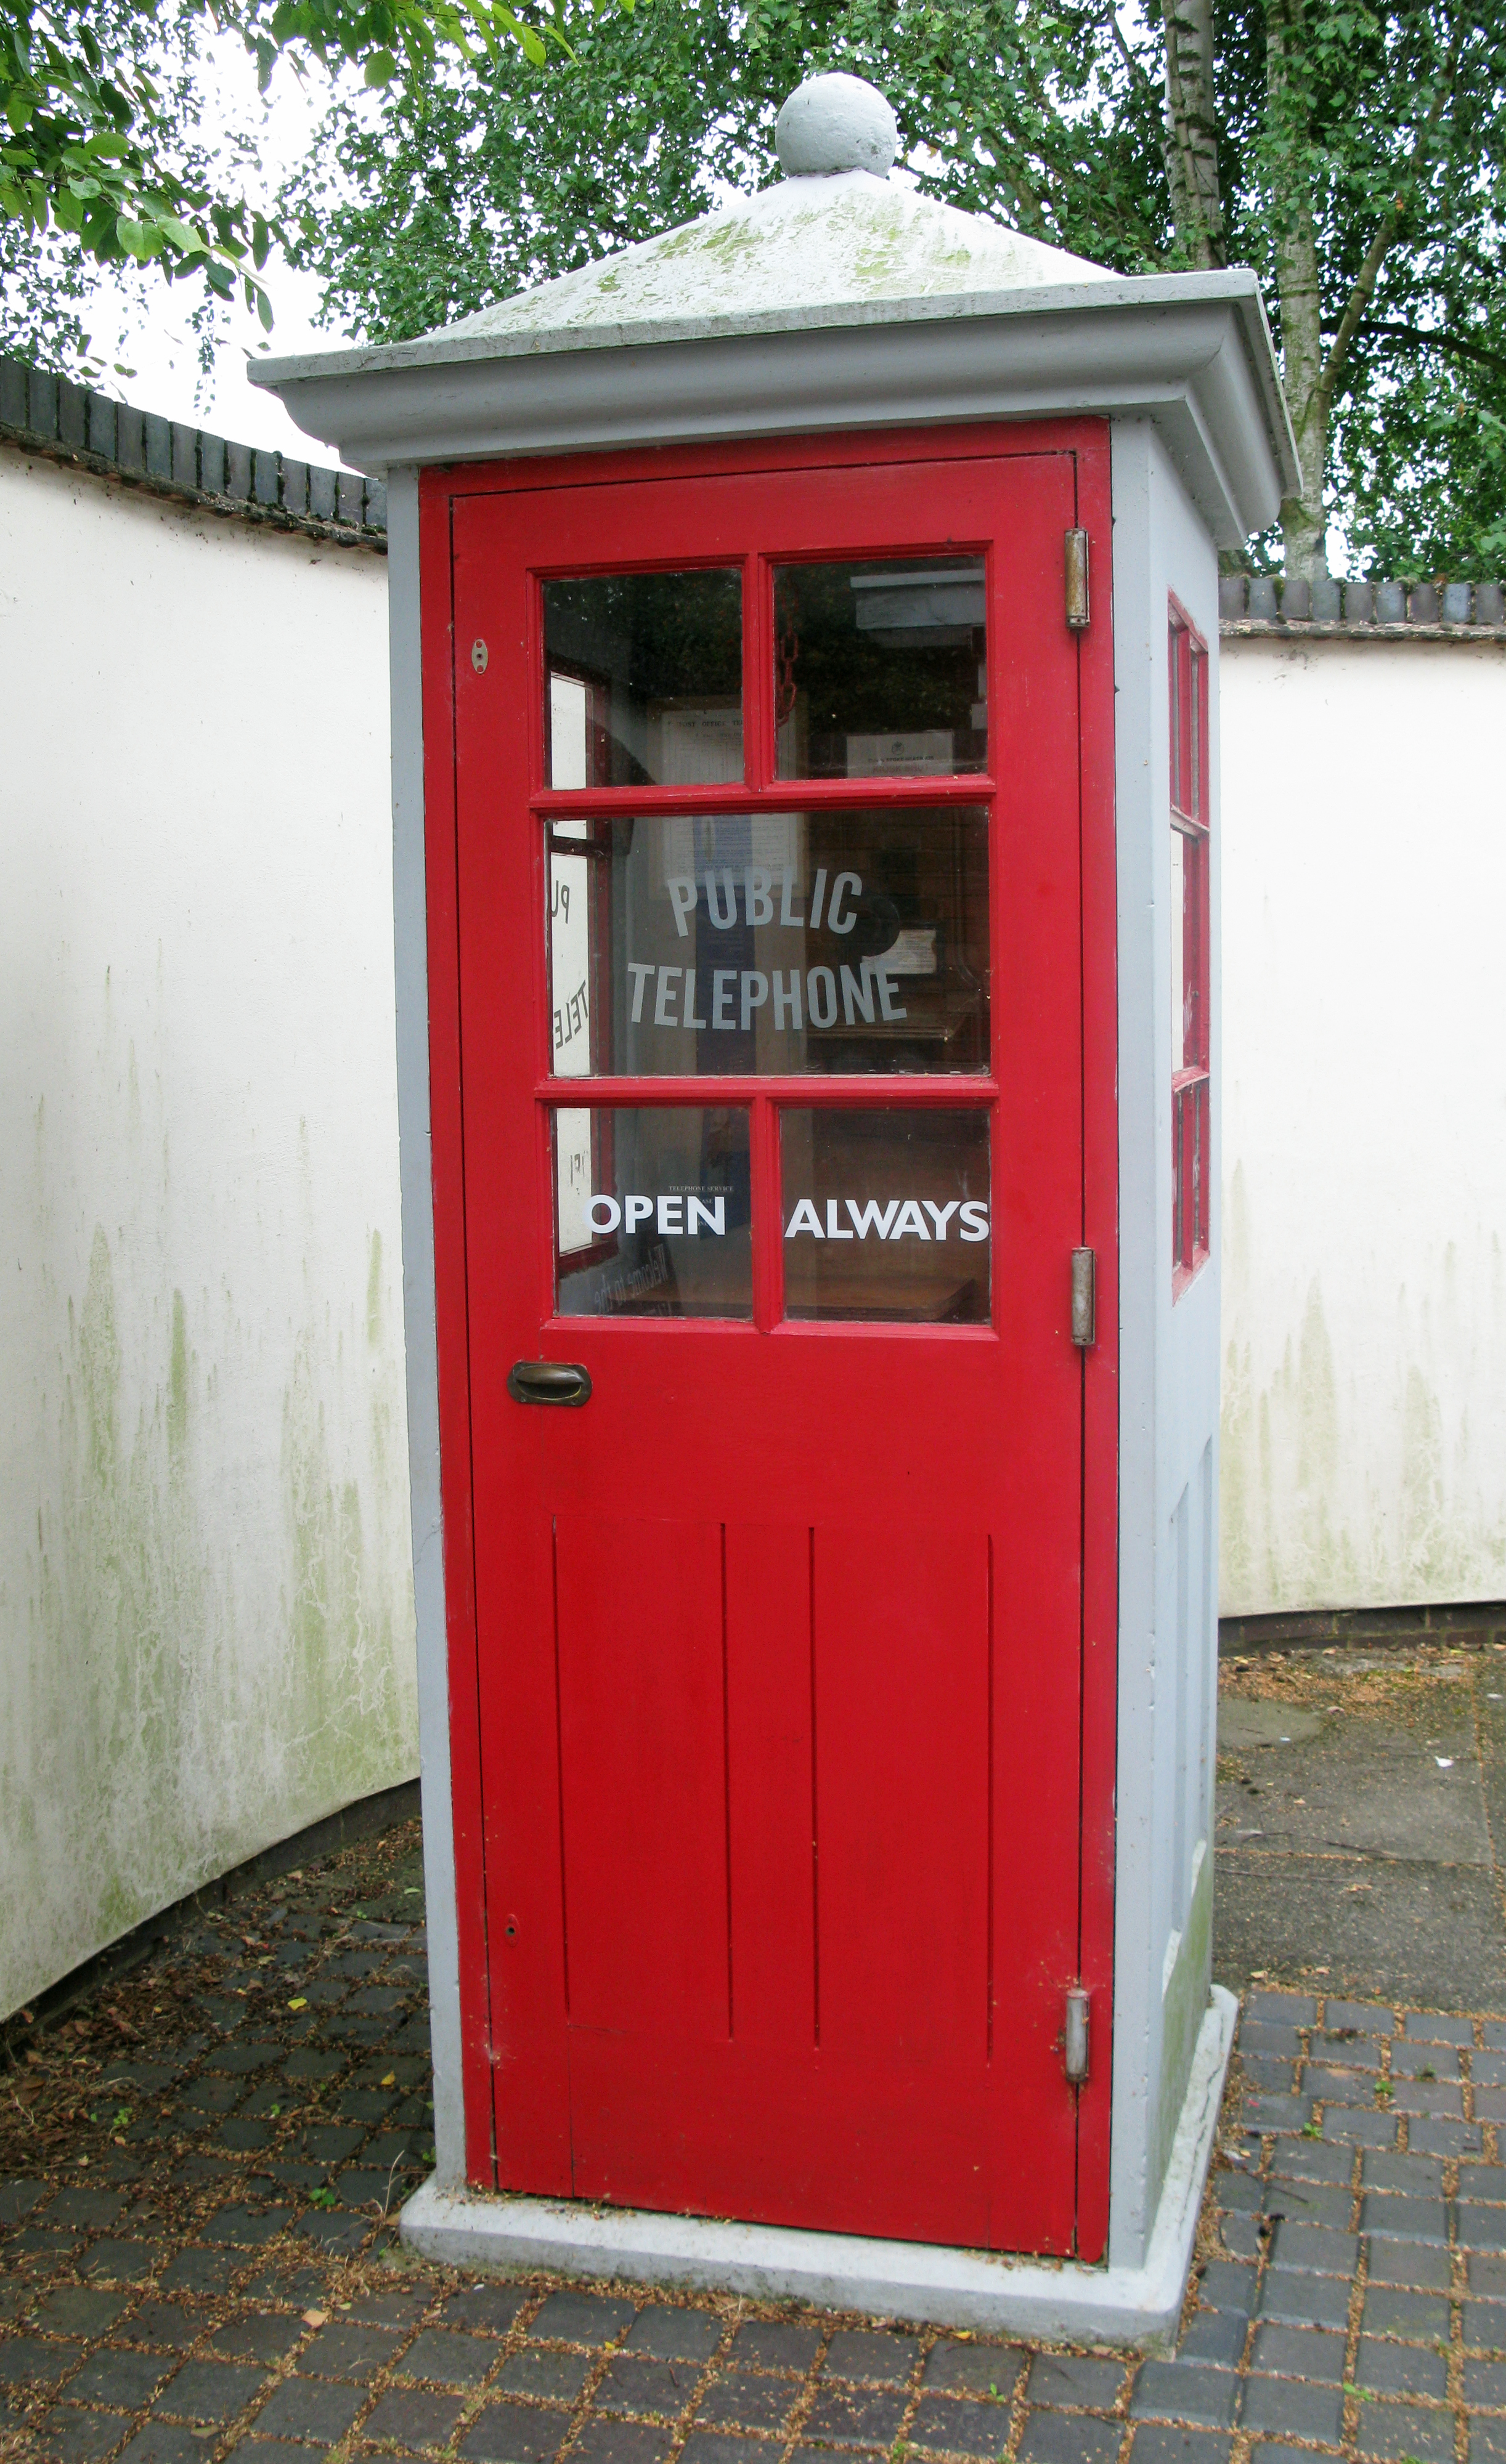 K1 at the National Telephone Kiosk Collection, at Avoncroft